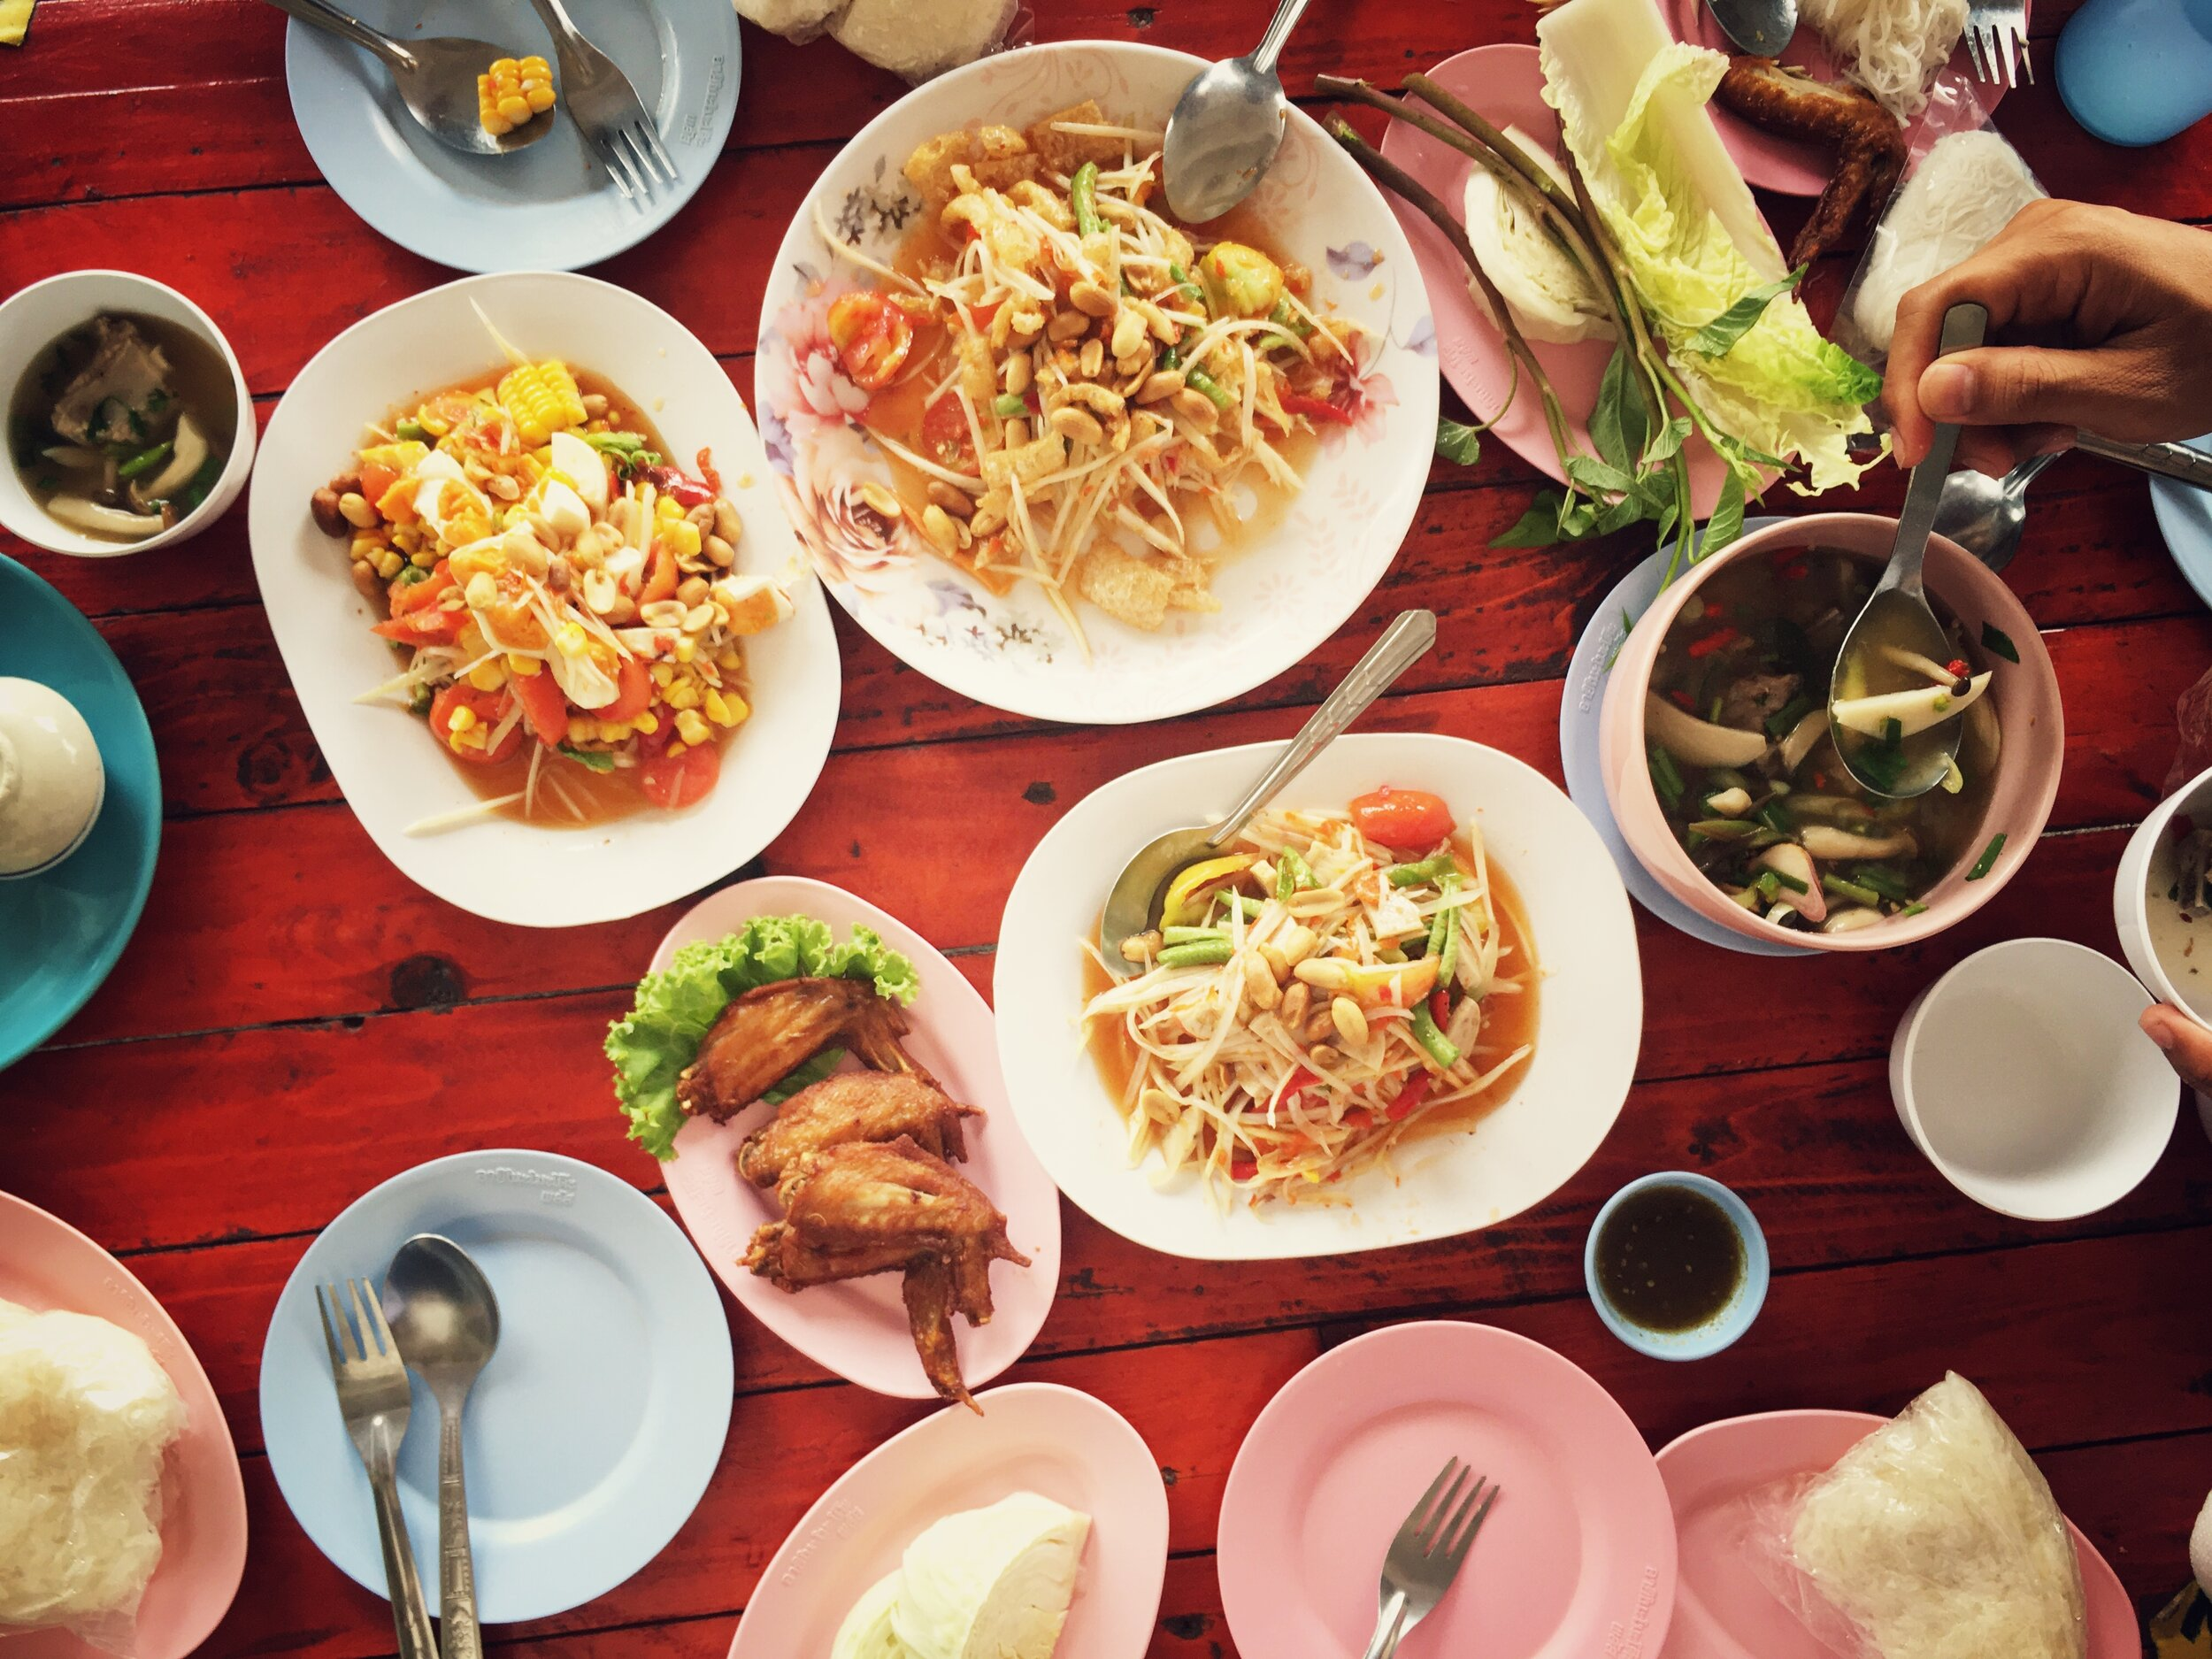 Authentic Bangkok foods being shared as is the tradition in Bangkok cuisine